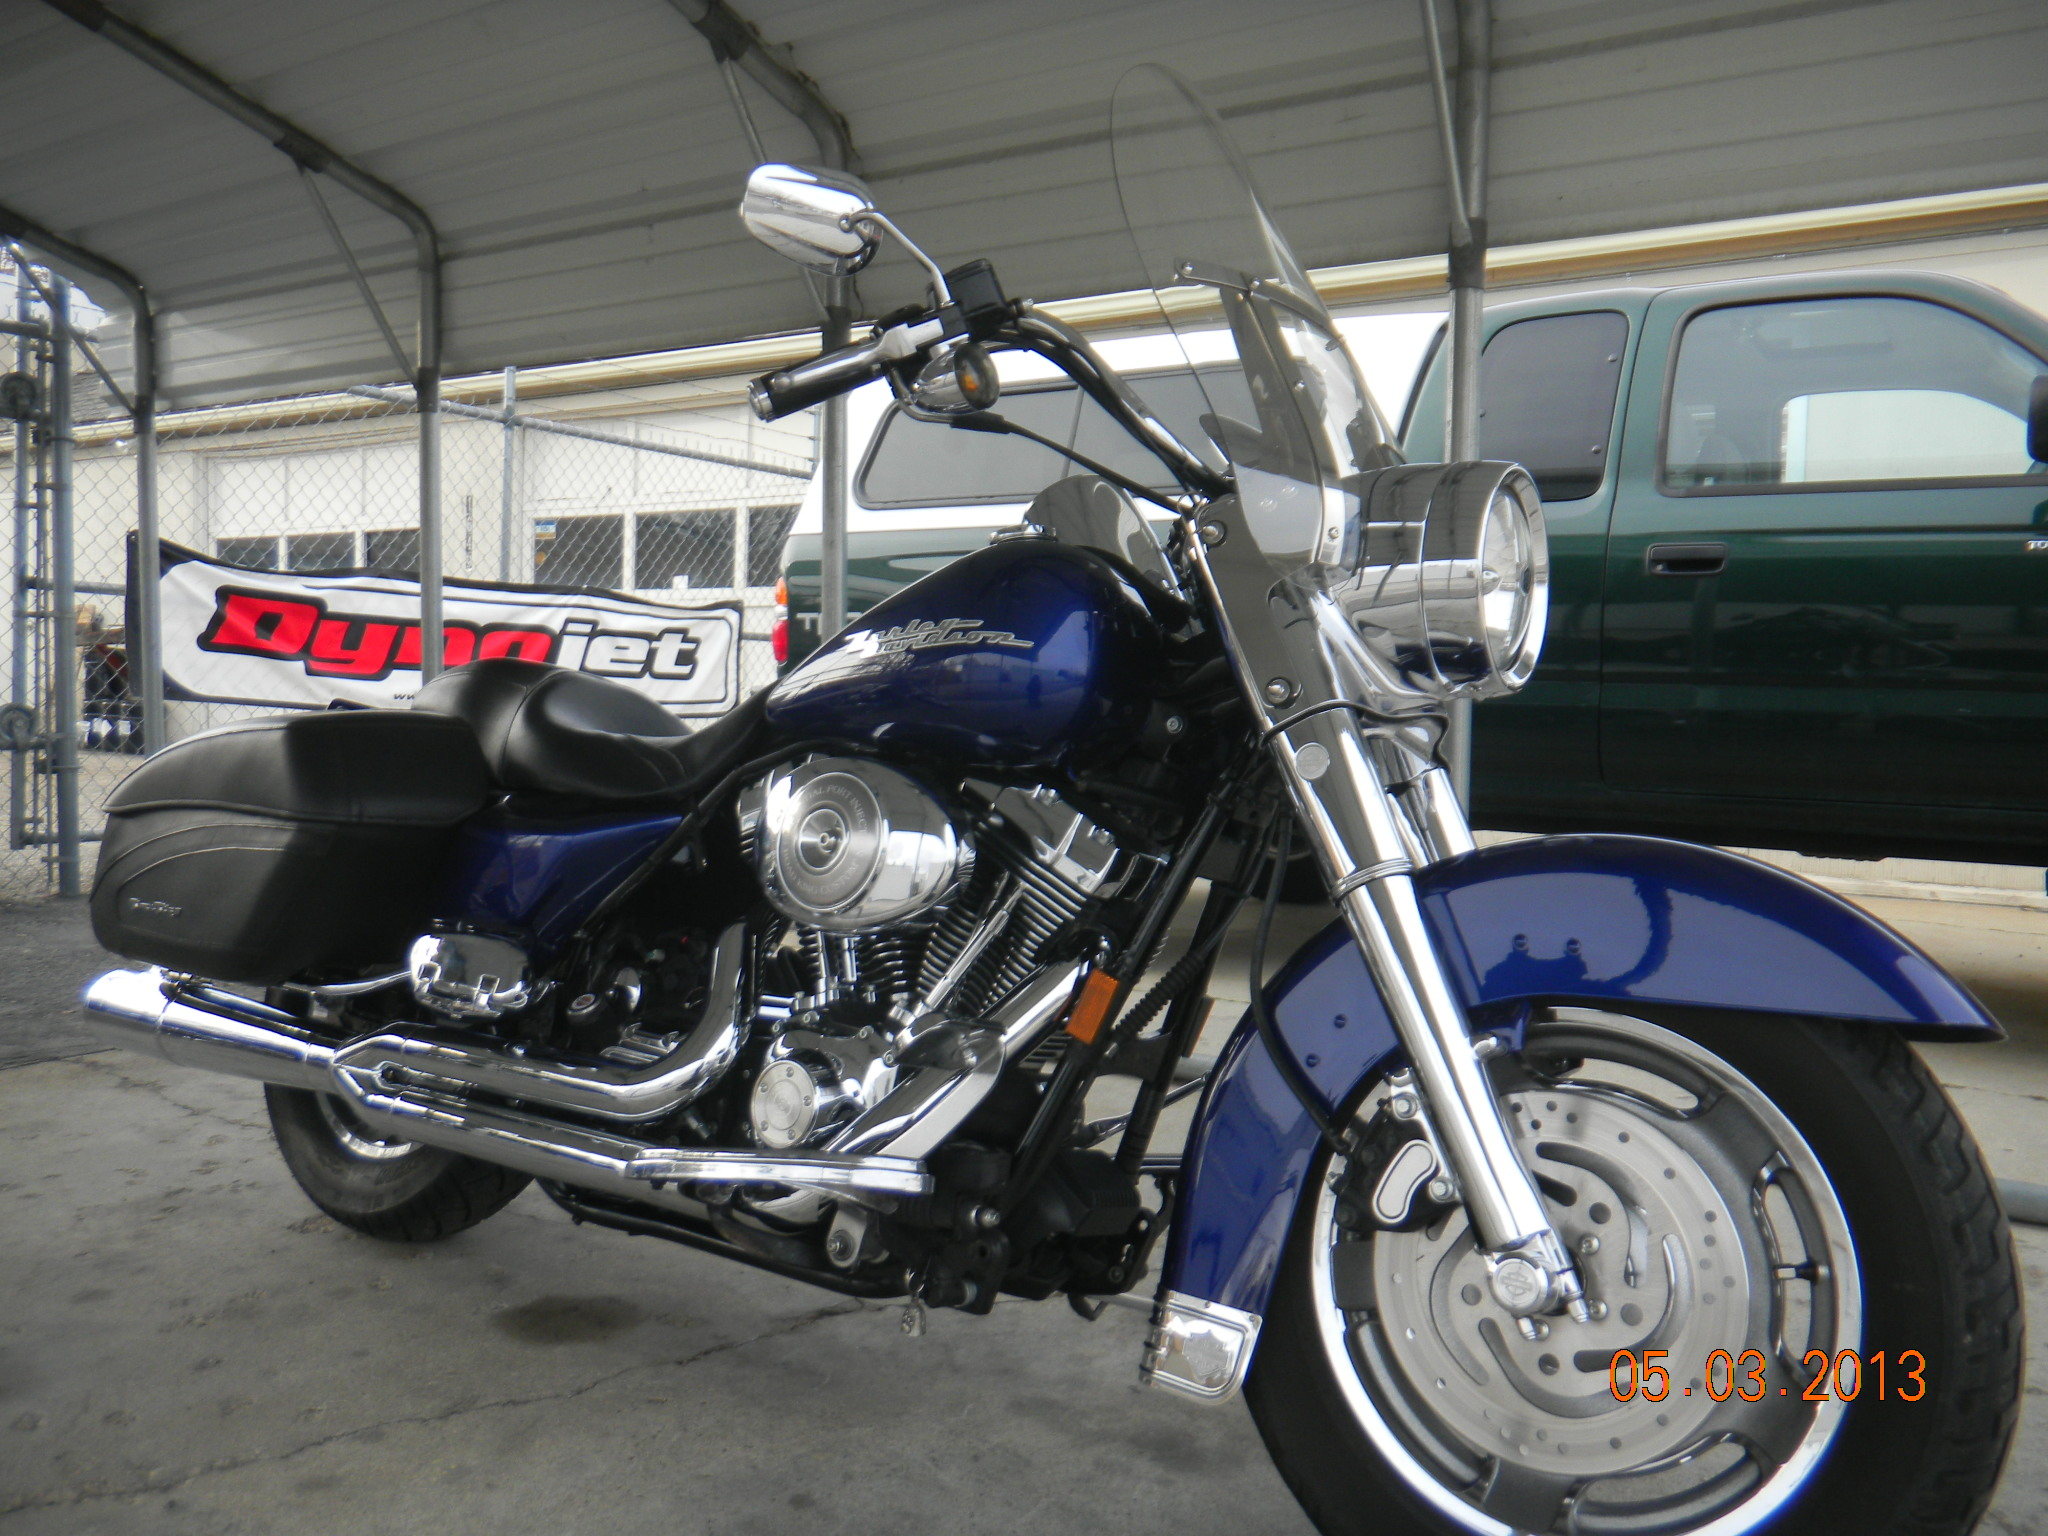 VANCE AND HINES PRO PIPE - THEY MAKE POWER!